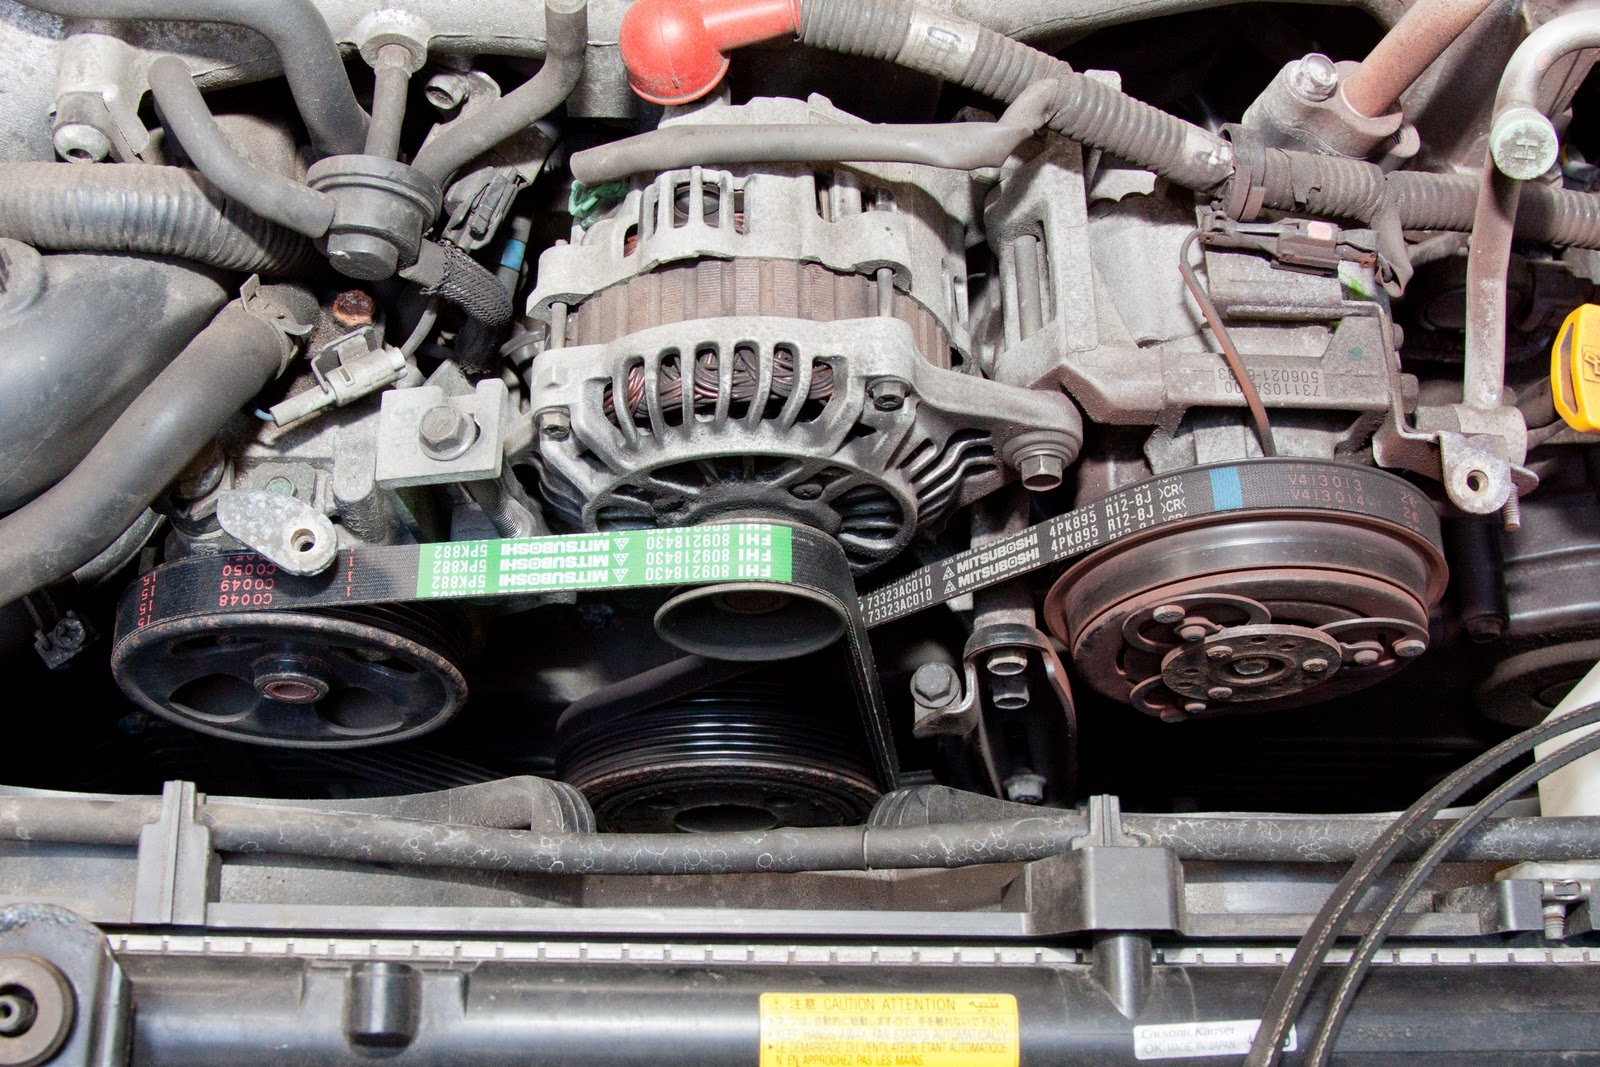 2002 Subaru Wrx Ecu Wiring Diagram 2003 Mitsubishi Eclipse Gts Stereo 2001 Outback Air Conditioning Parts Great View From The Exerda Keeping Old Forester Going Diy Belt Rh Blogspot Com Exhaust System Engine